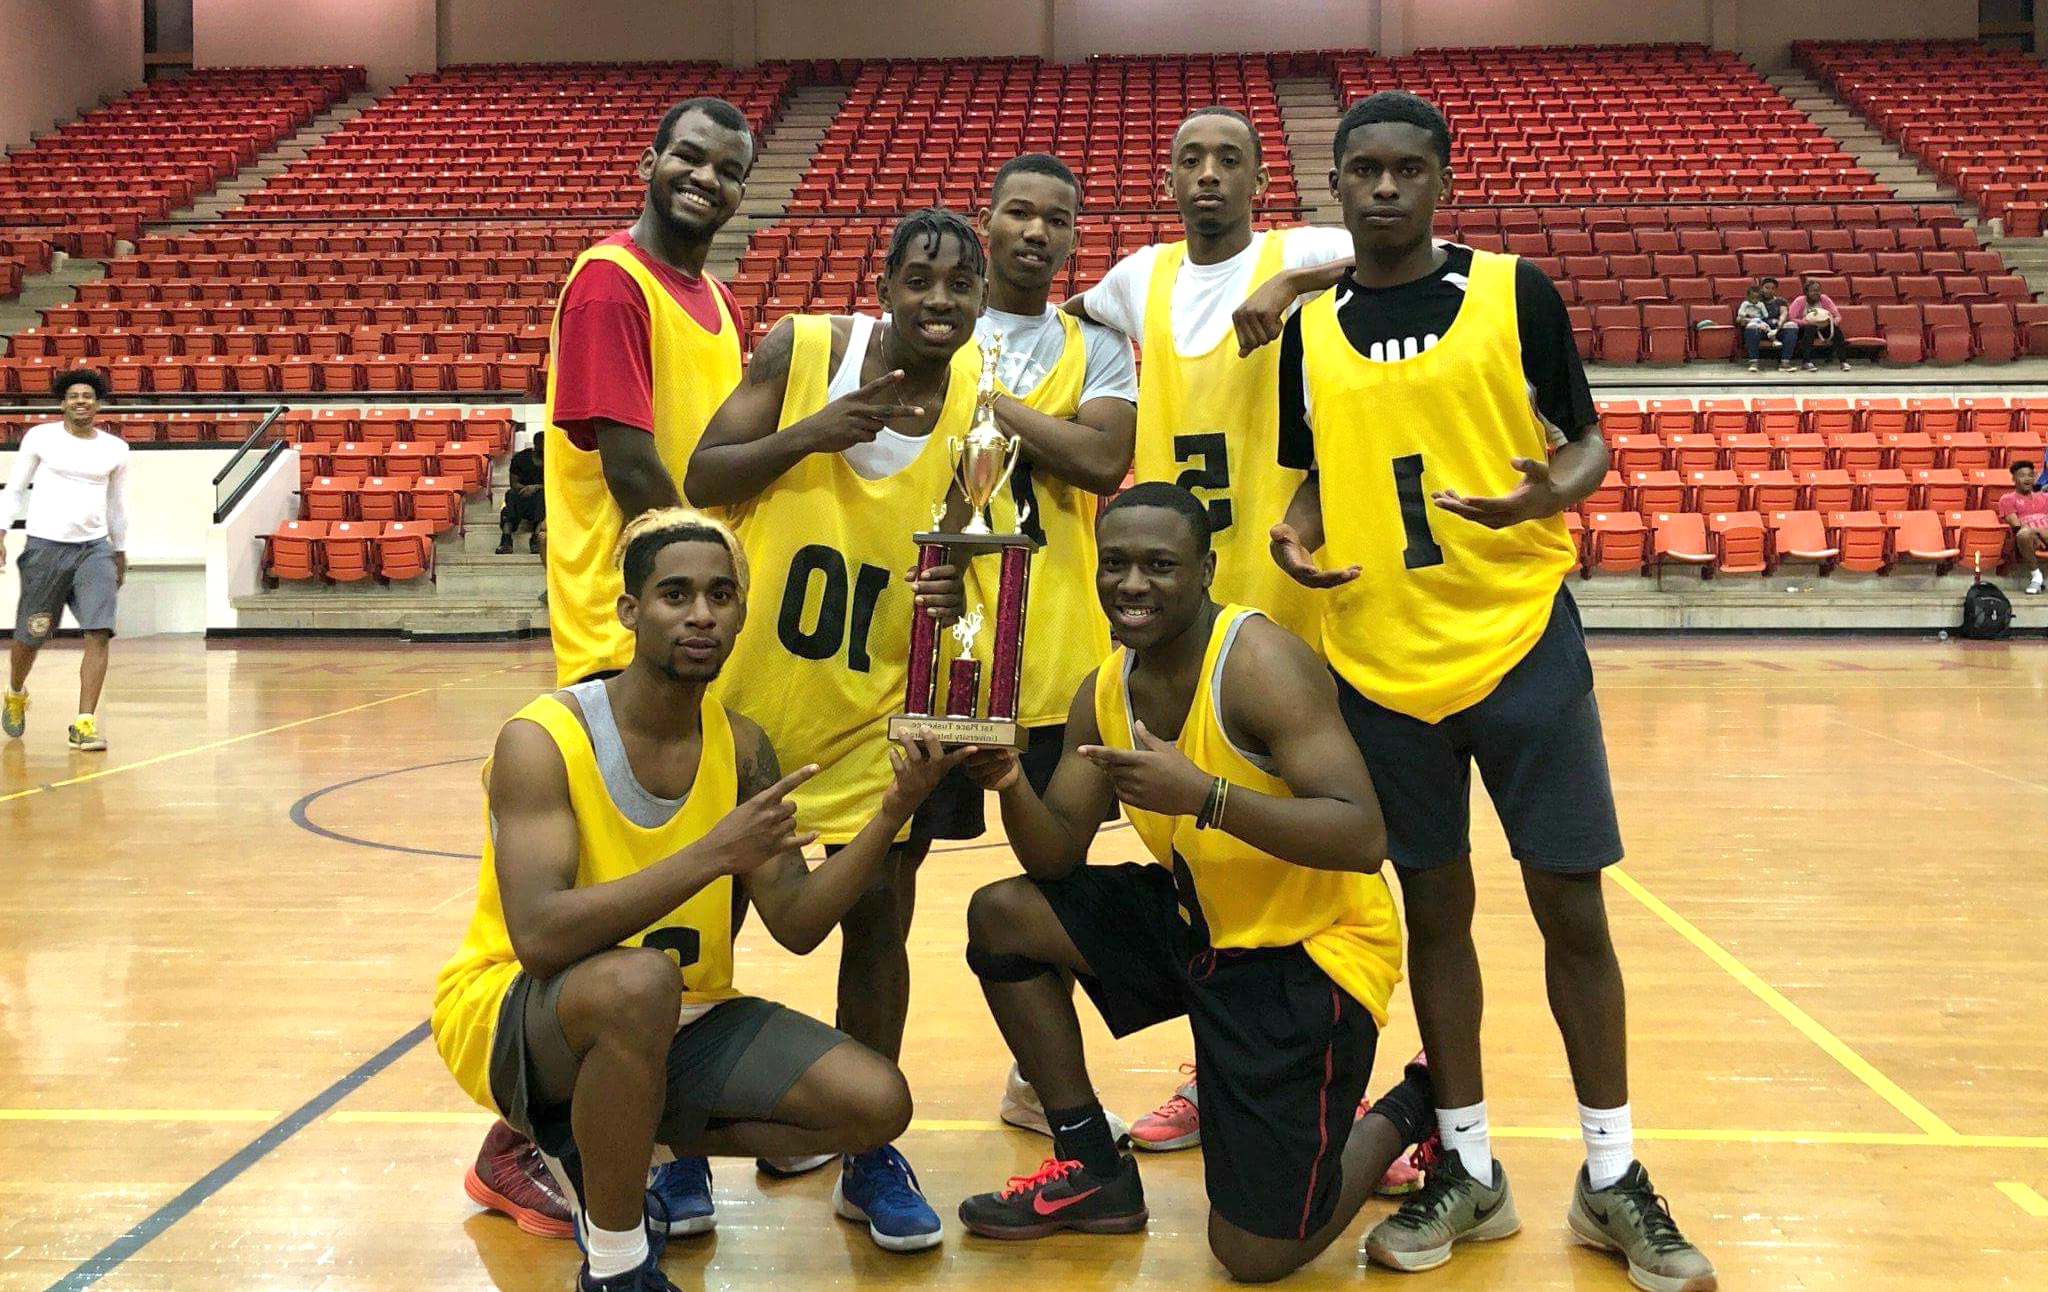 Intramural 5 on 5 basketball champs with trophy